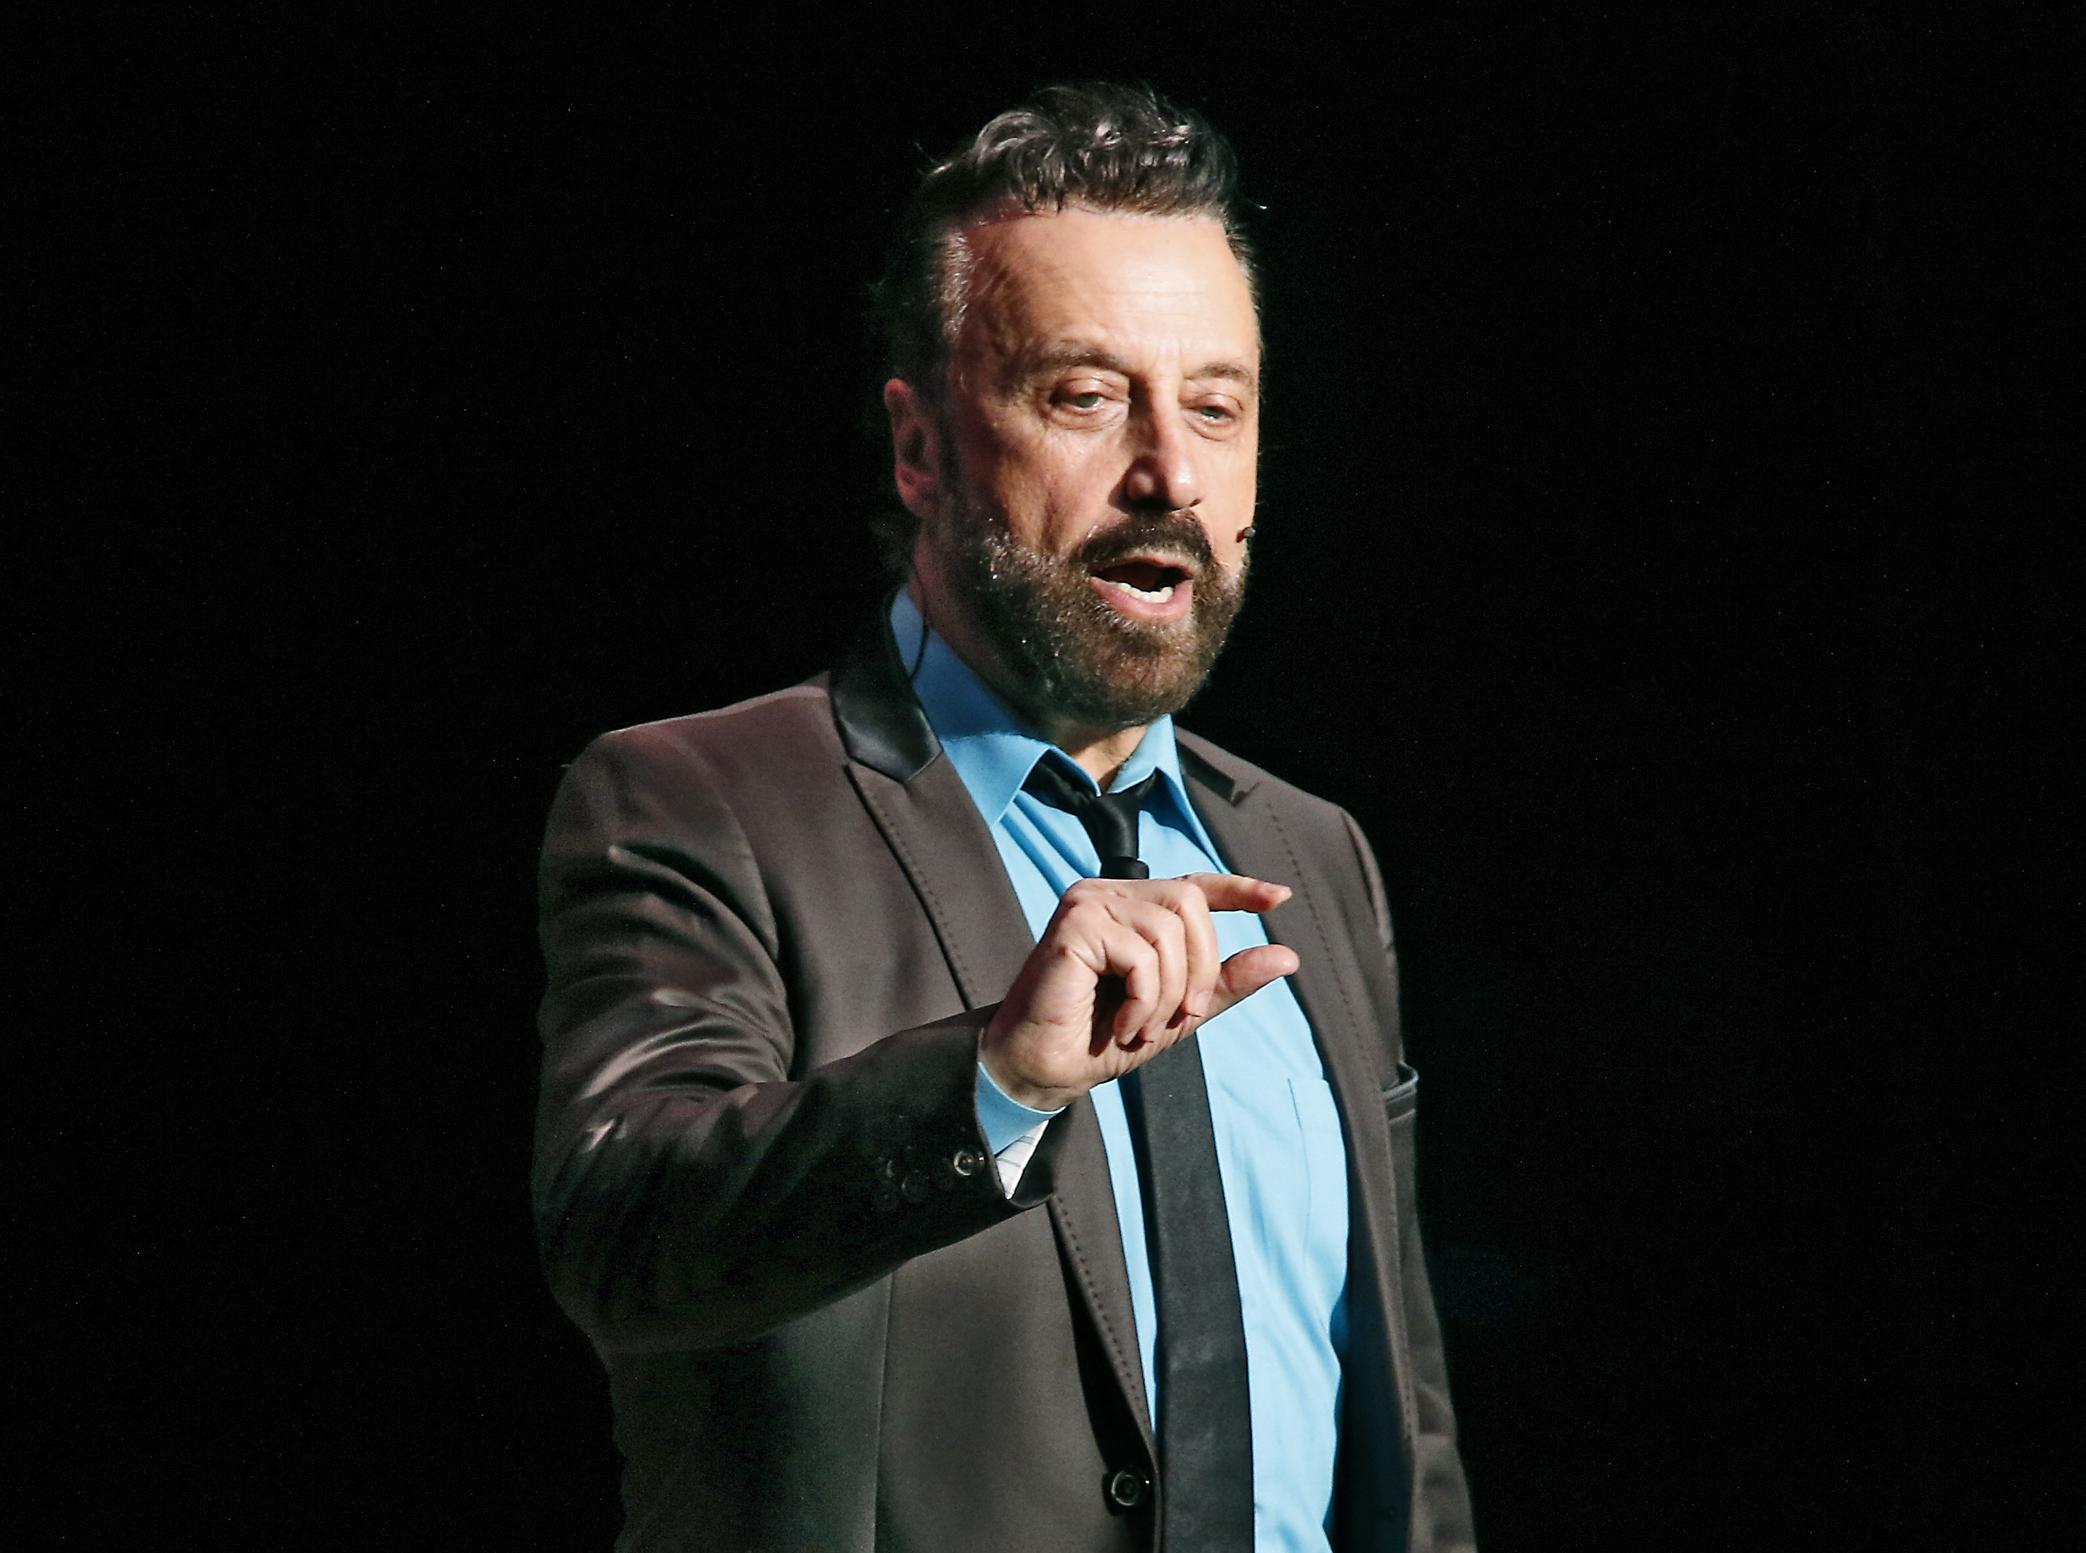 Interview: Yakov Smirnoff Is Helping America Heal, One Joke At A Time photo